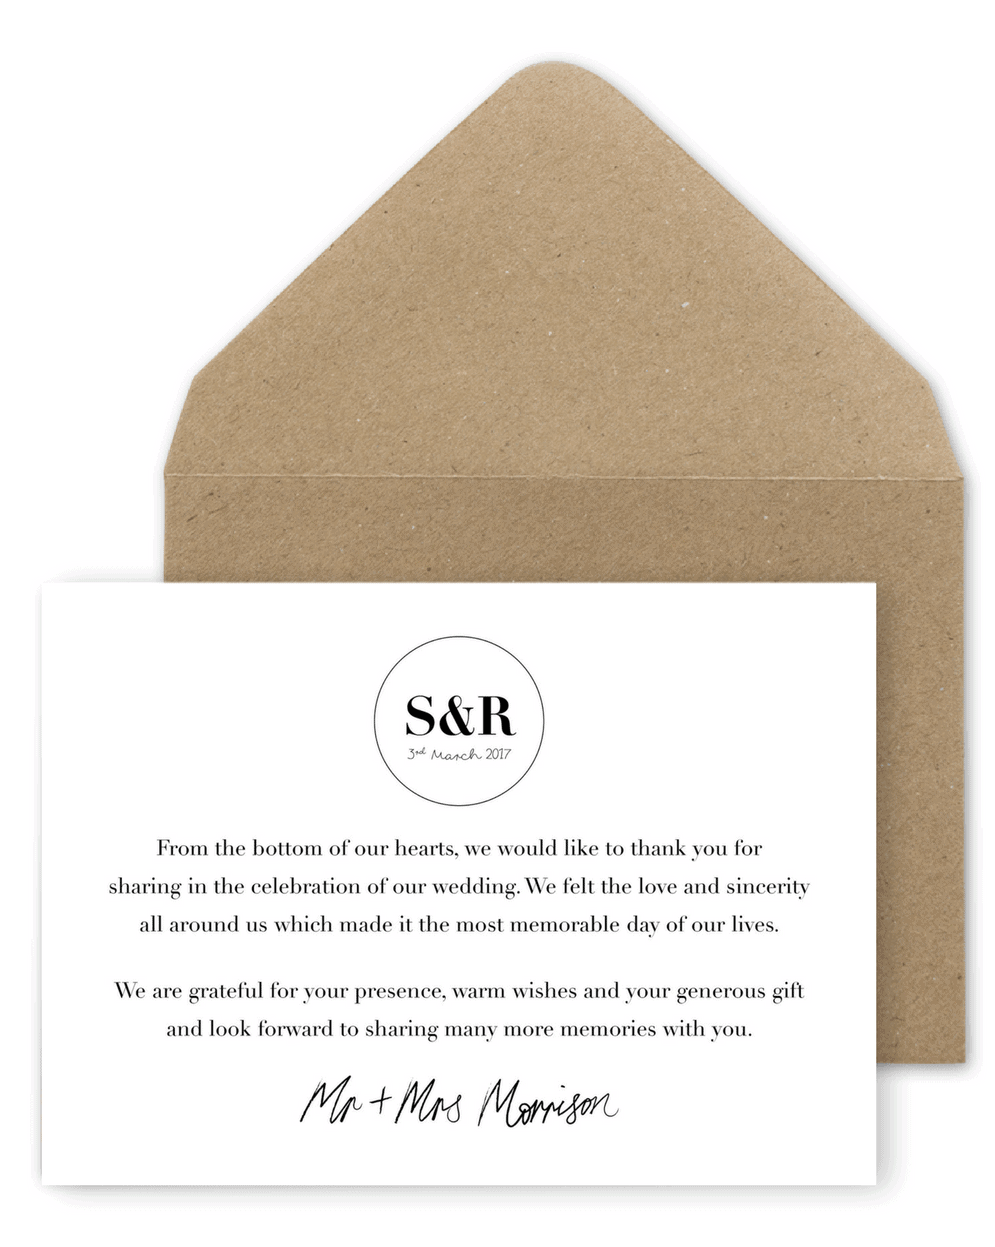 5 Wording Ideas For Your Wedding Thank You Cards For The Love Of